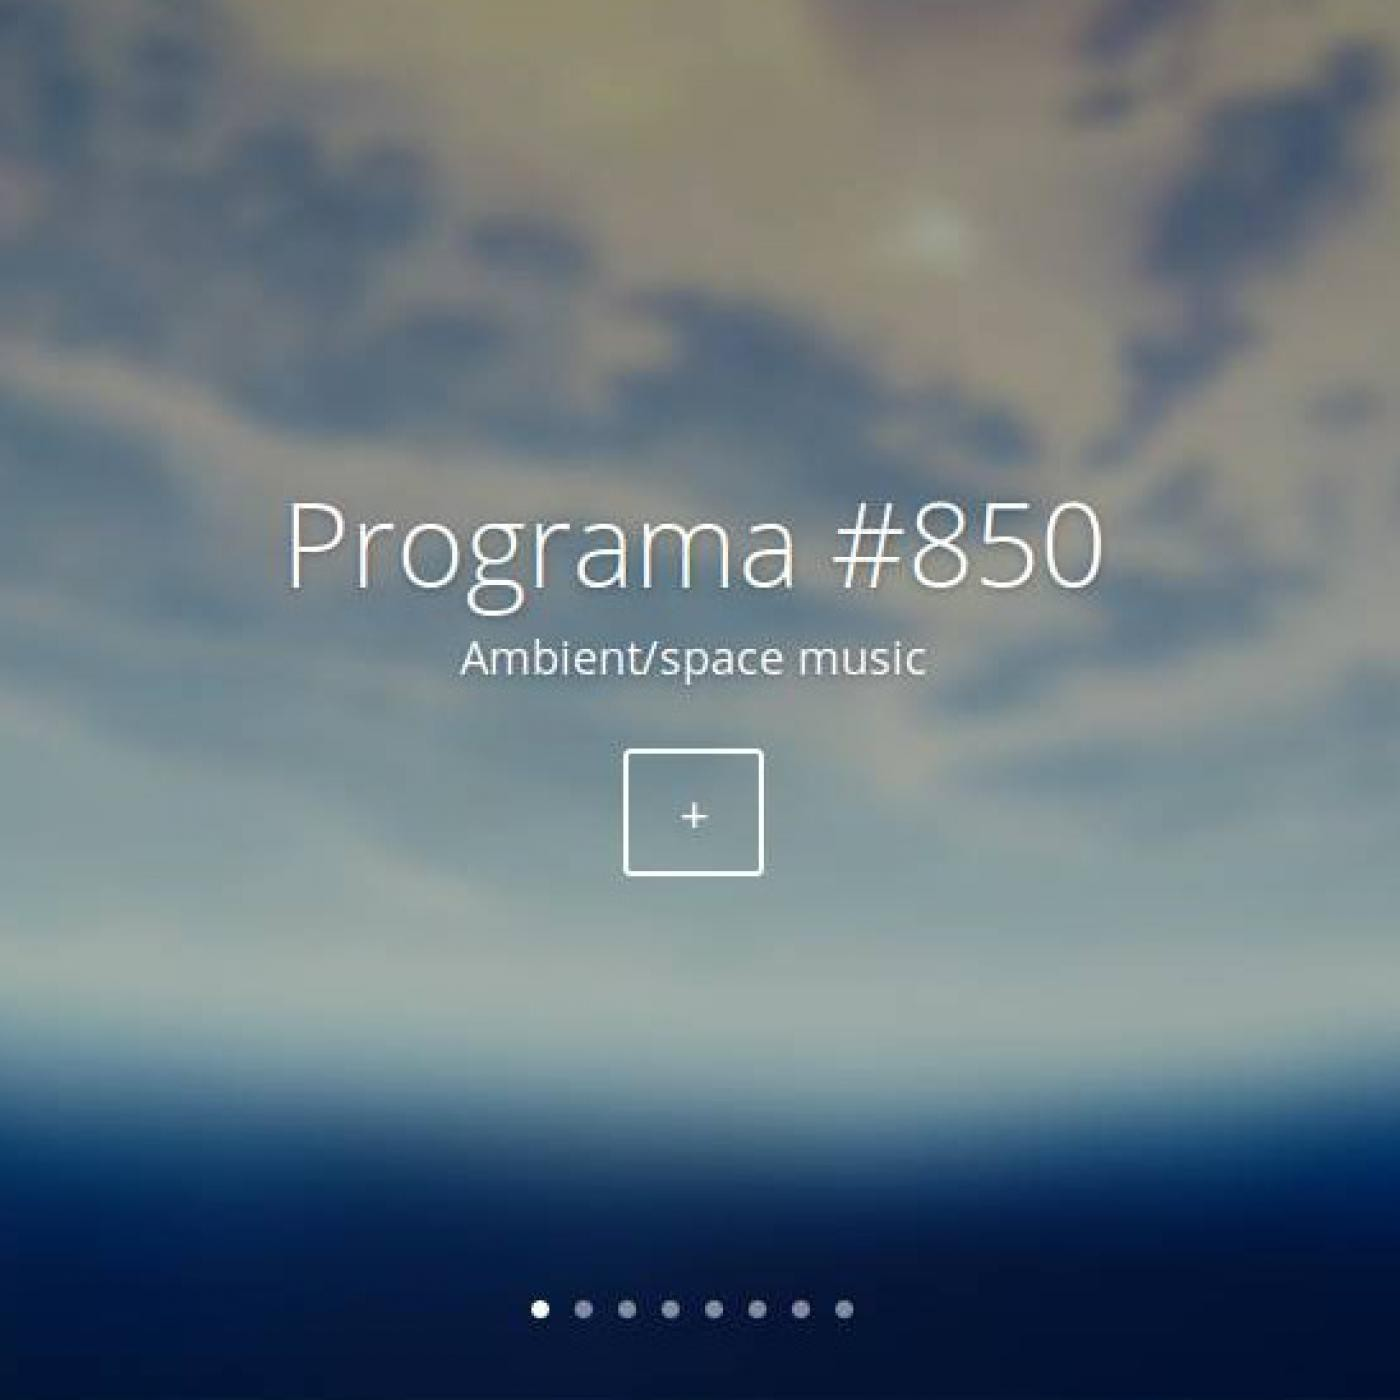 #850, ambient/space music